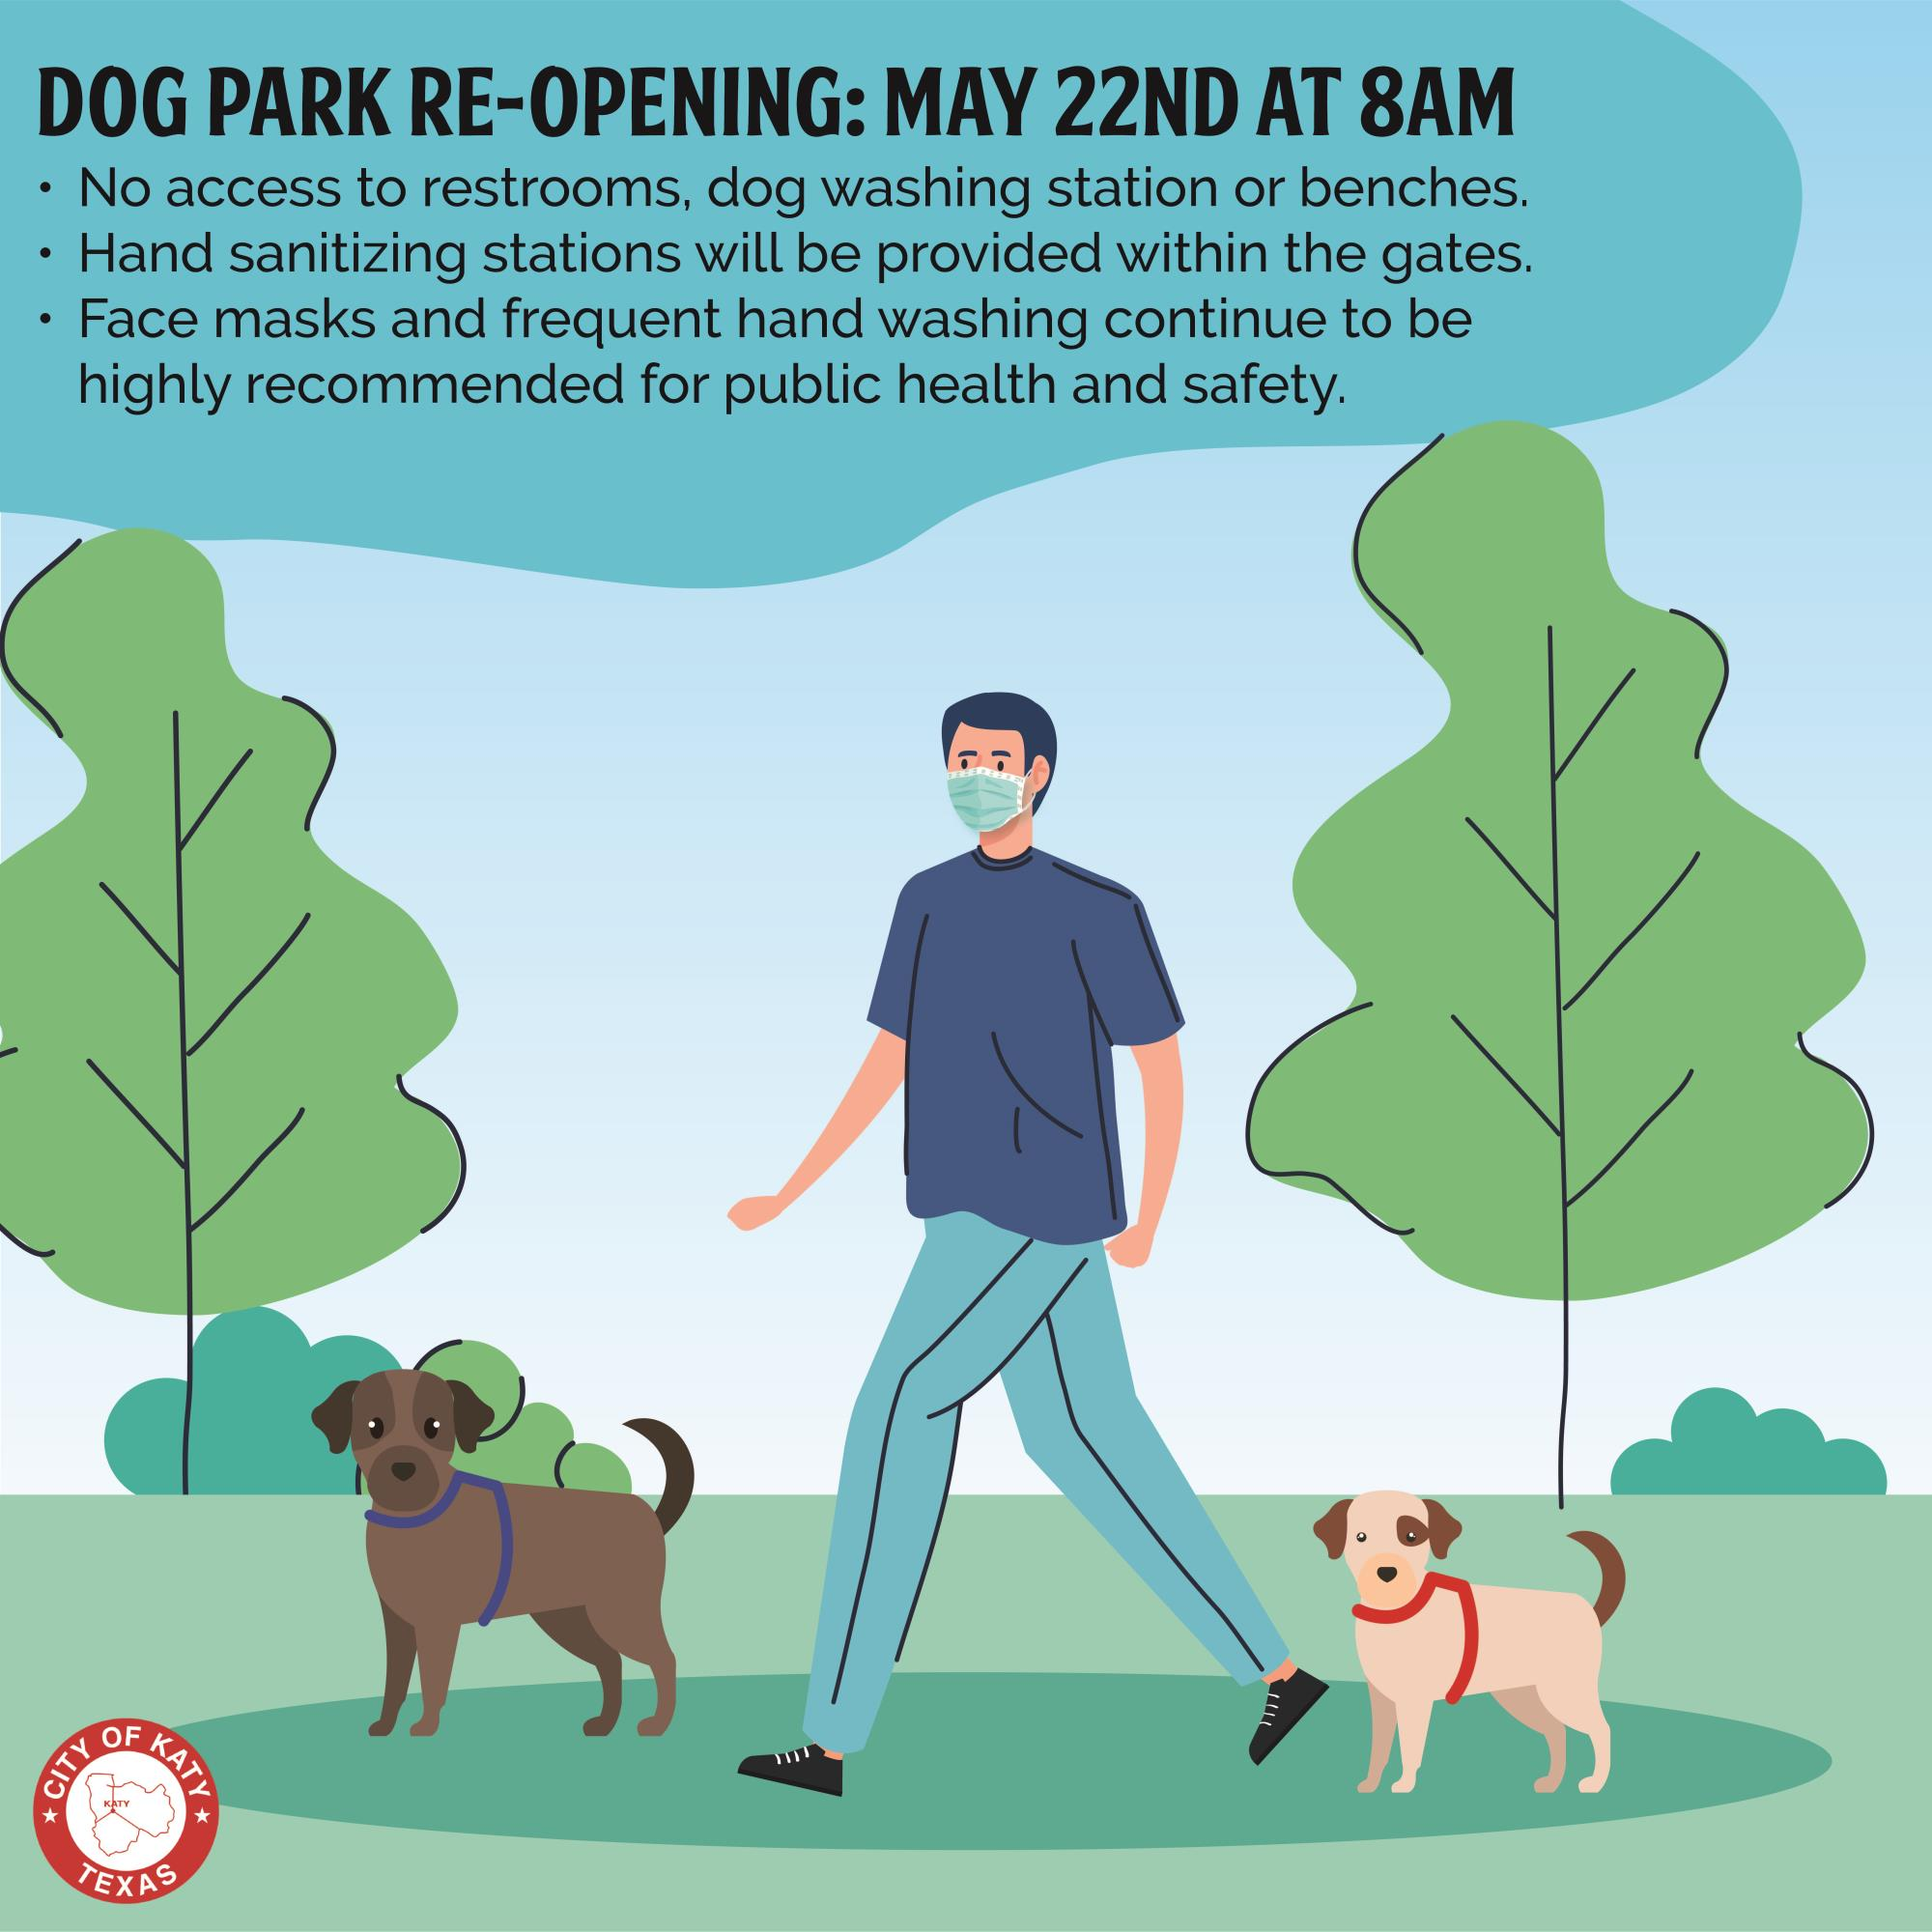 Dog Park Re-Opening: May 22nd